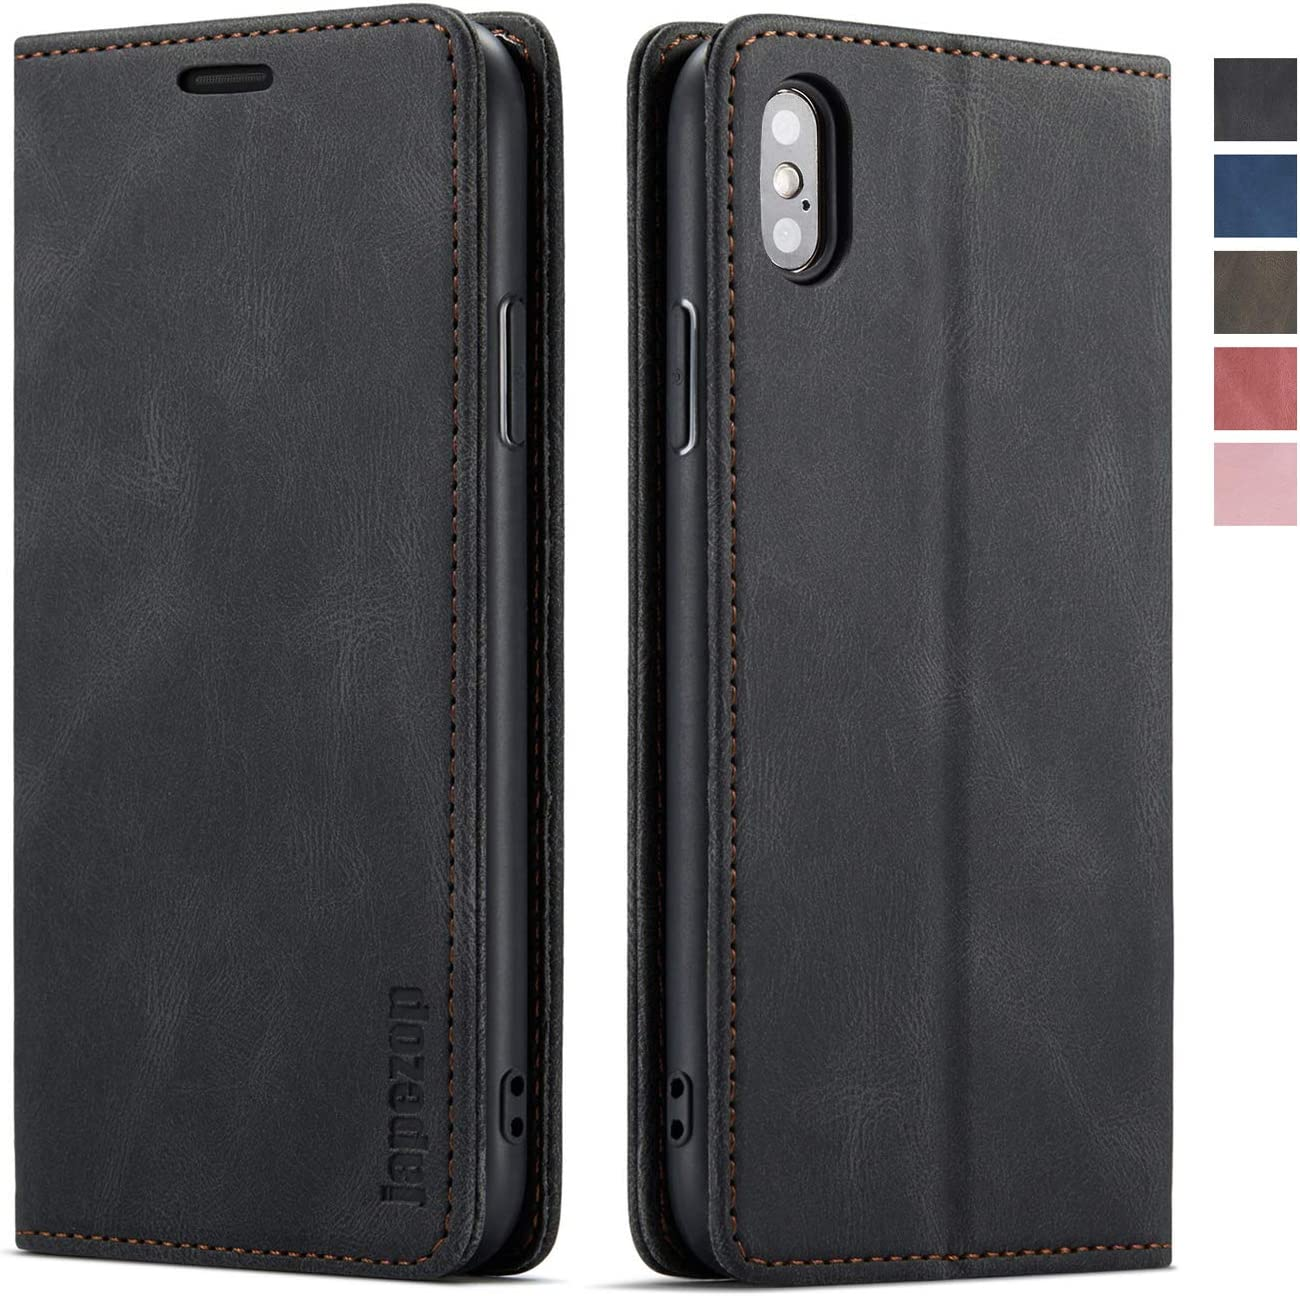 japezop iPhone Xs iPhone X Wallet Case with Card Holder RFID Blocking, Premium PU Leather Wallet Case with Magnetic Kickstand and Flip Cover for iPhone X (2017) / Xs (2018) 5.8 inch (Black)